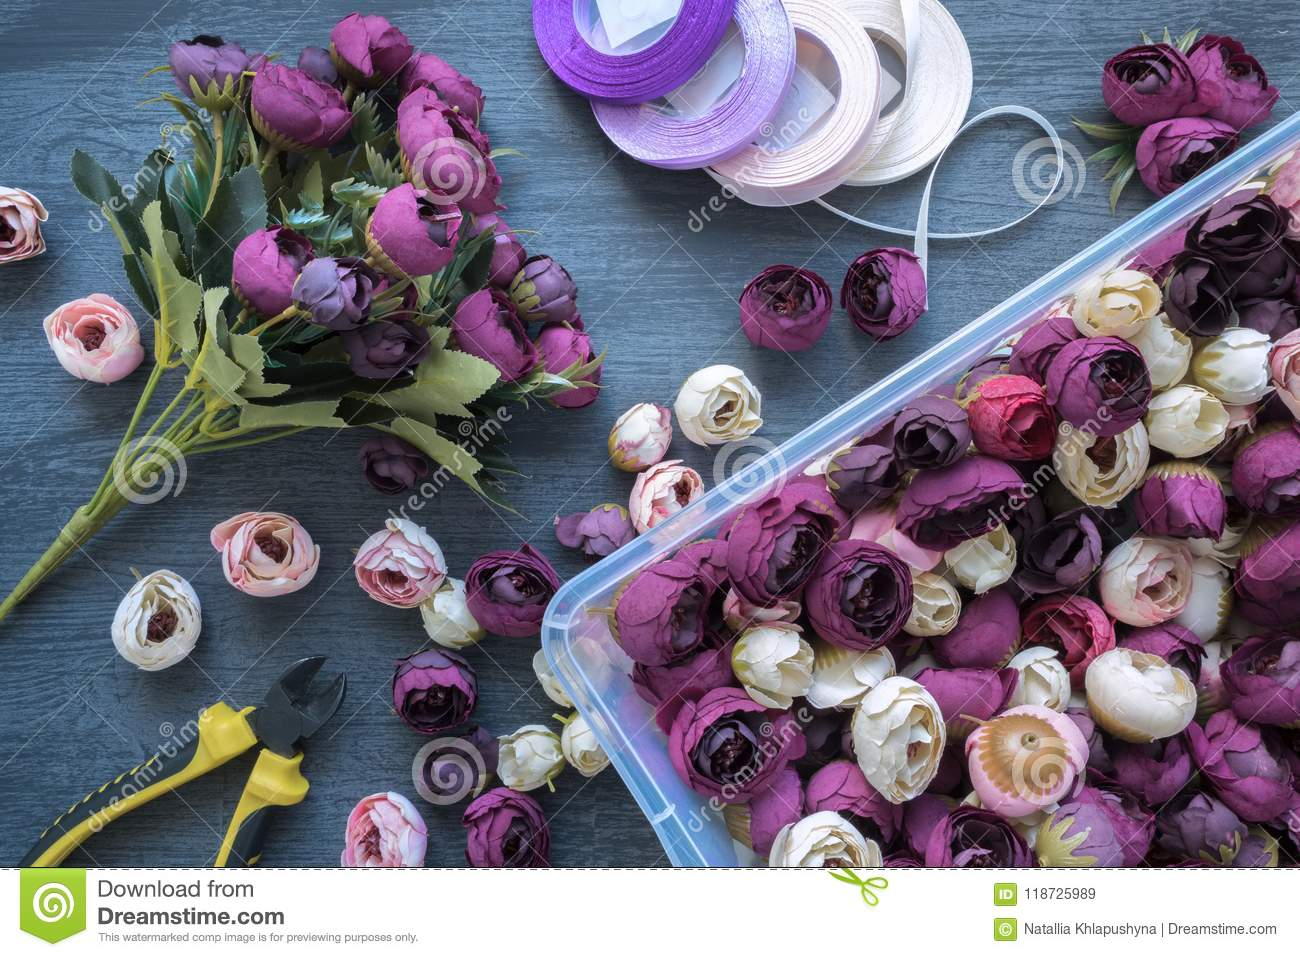 Making a artificial flower bouquet for wedding decorating and download making a artificial flower bouquet for wedding decorating and interiors tools and accessories for junglespirit Image collections